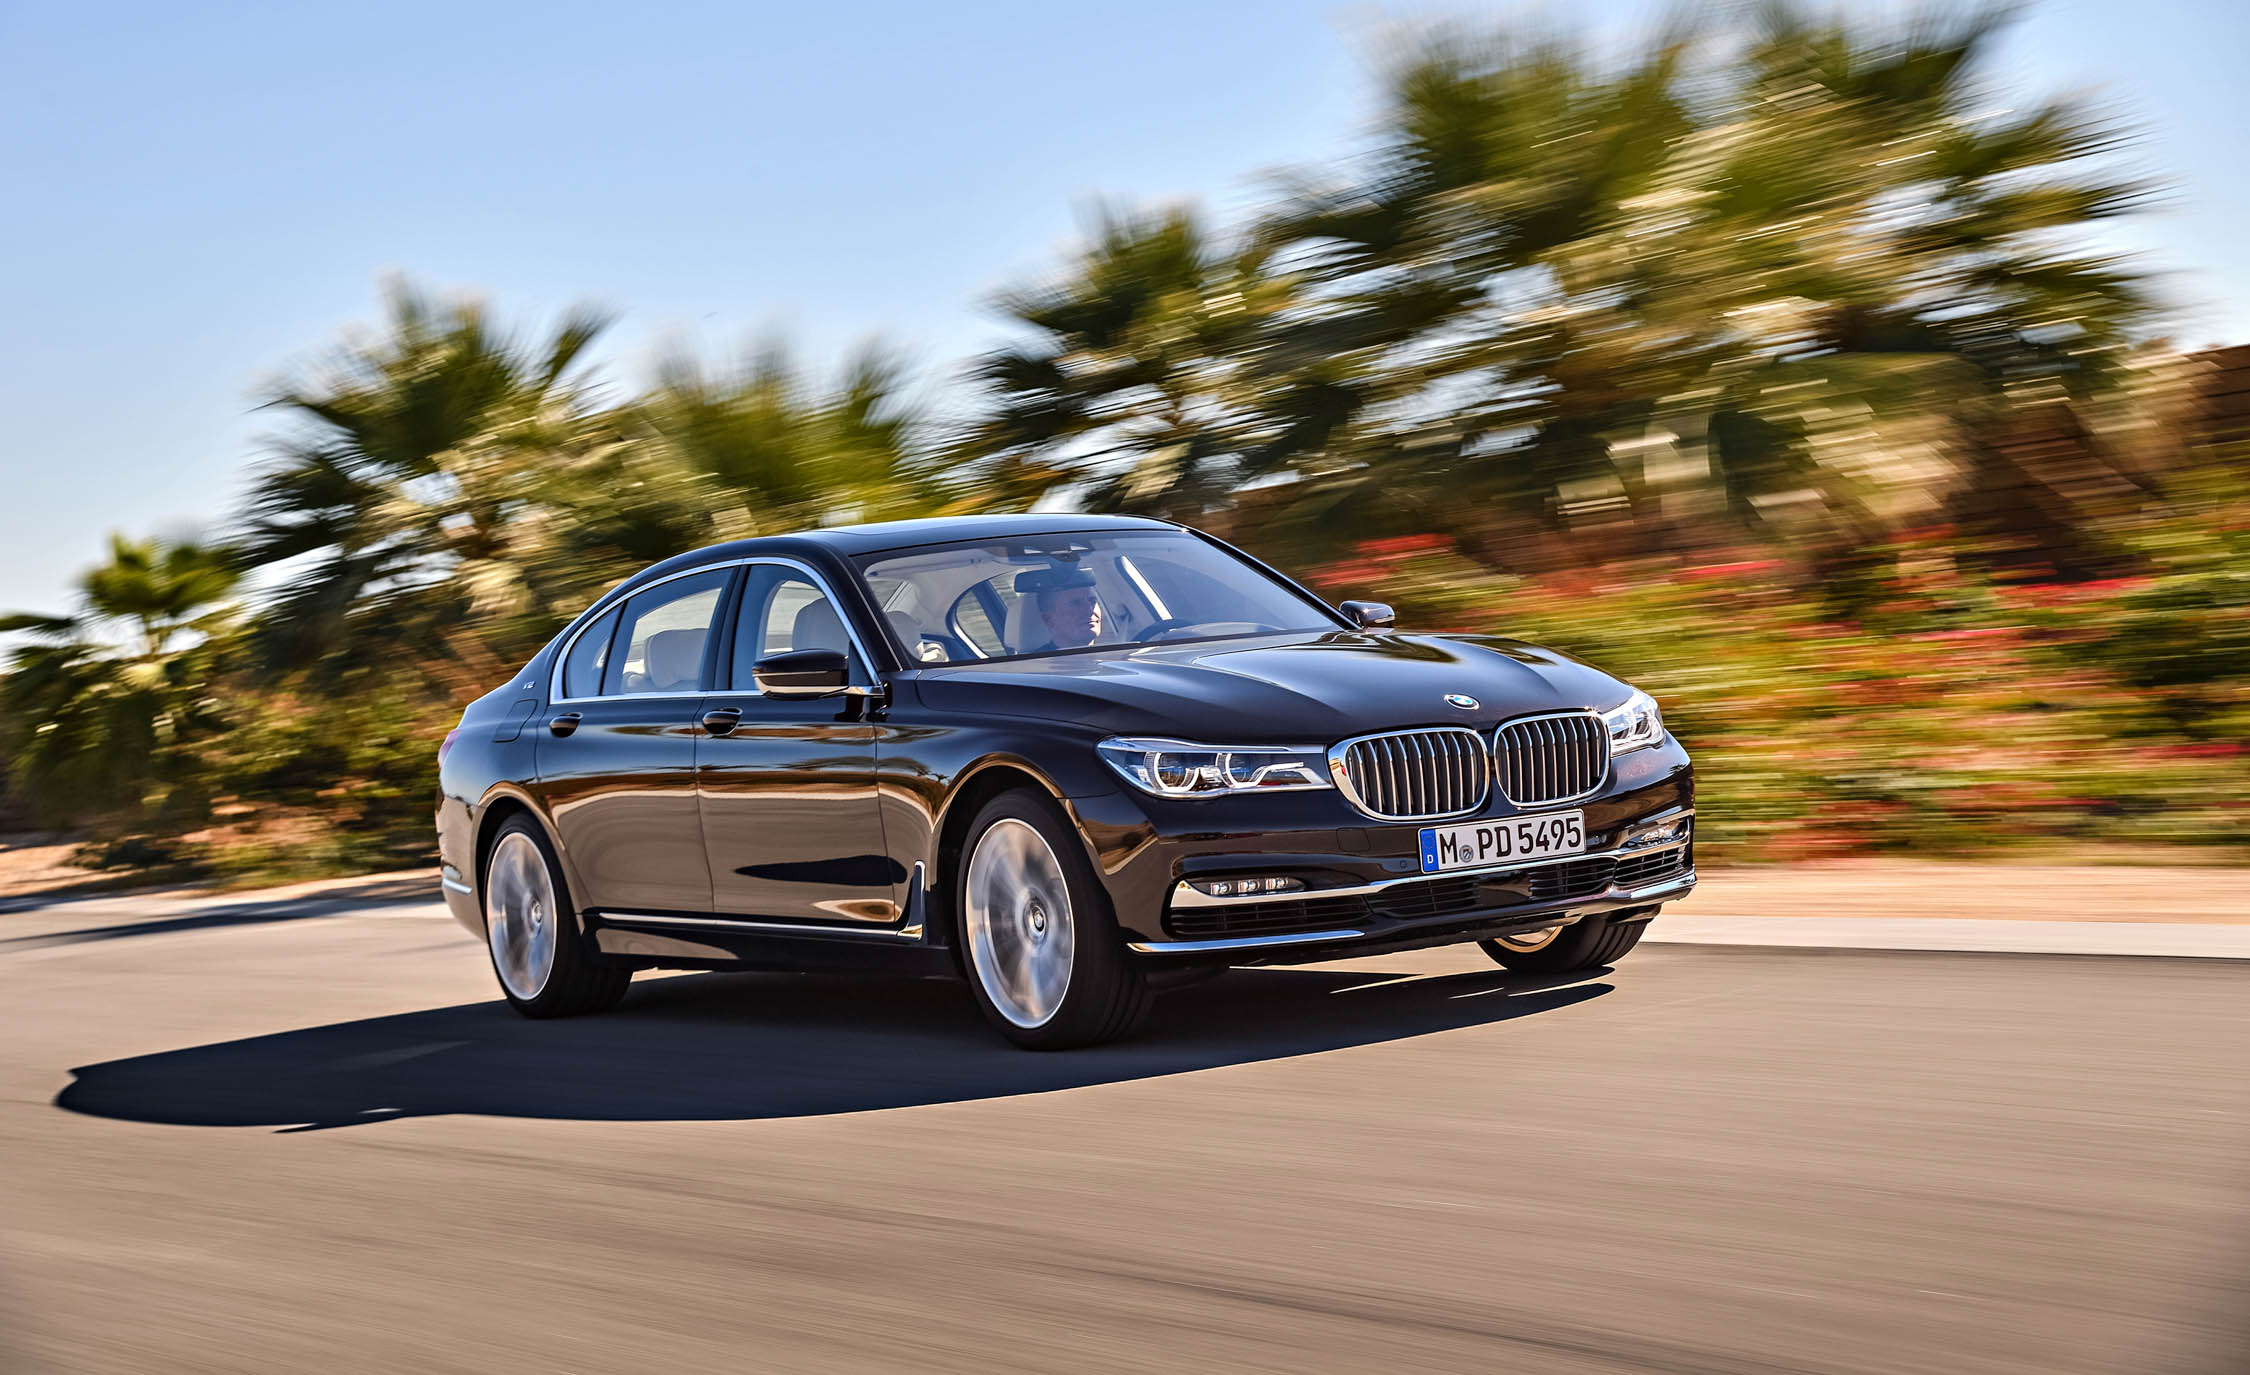 2017 BMW M760Li XDrive Test Drive Front And Side View (Photo 70 of 76)